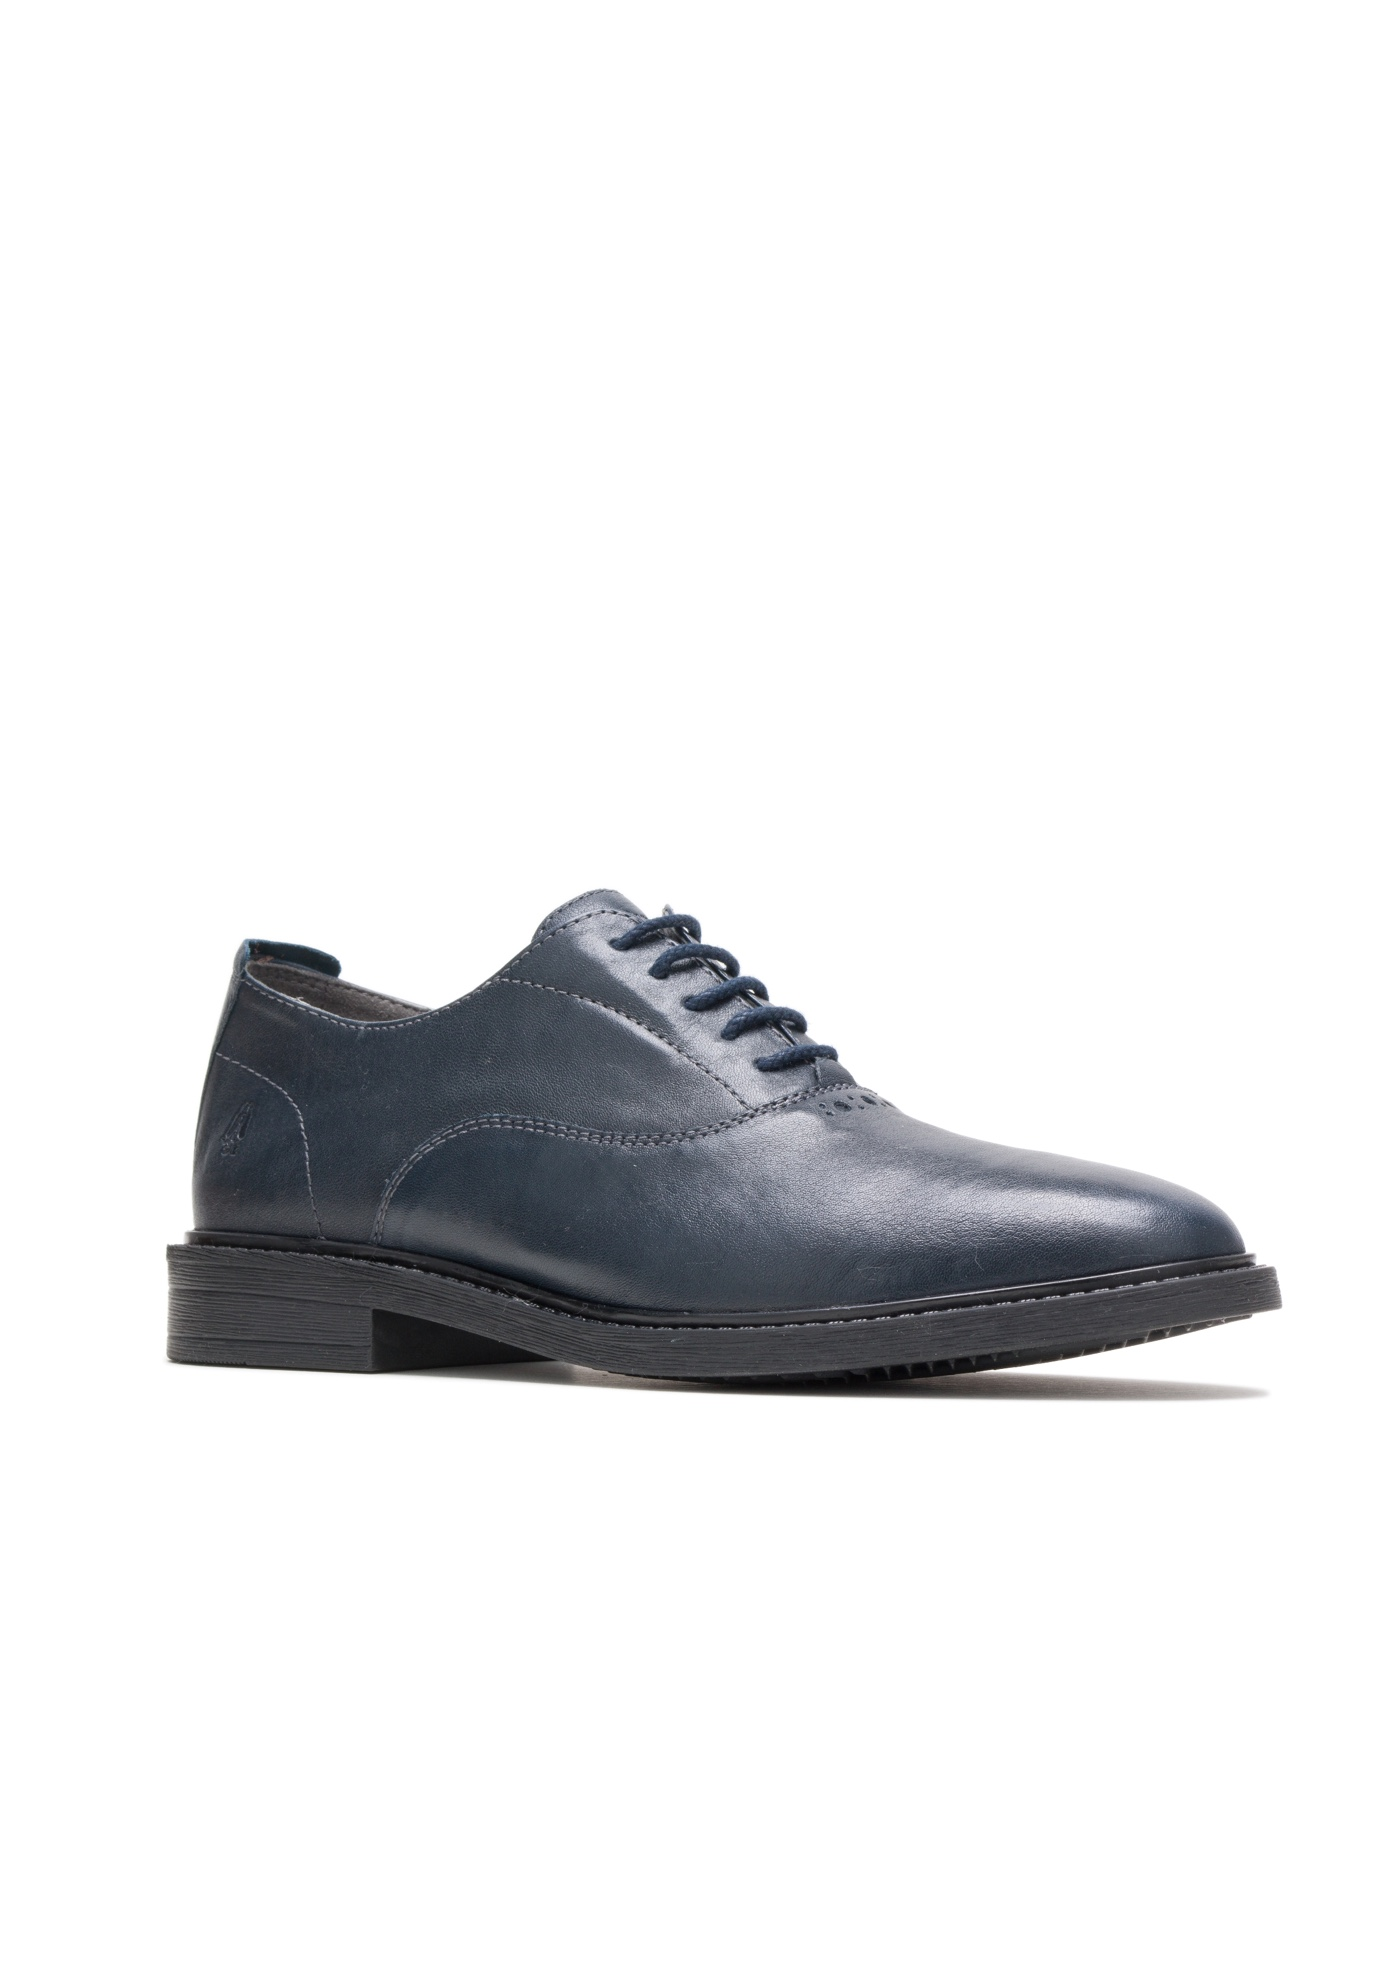 Hush Puppies® Davis Oxford Shoes,